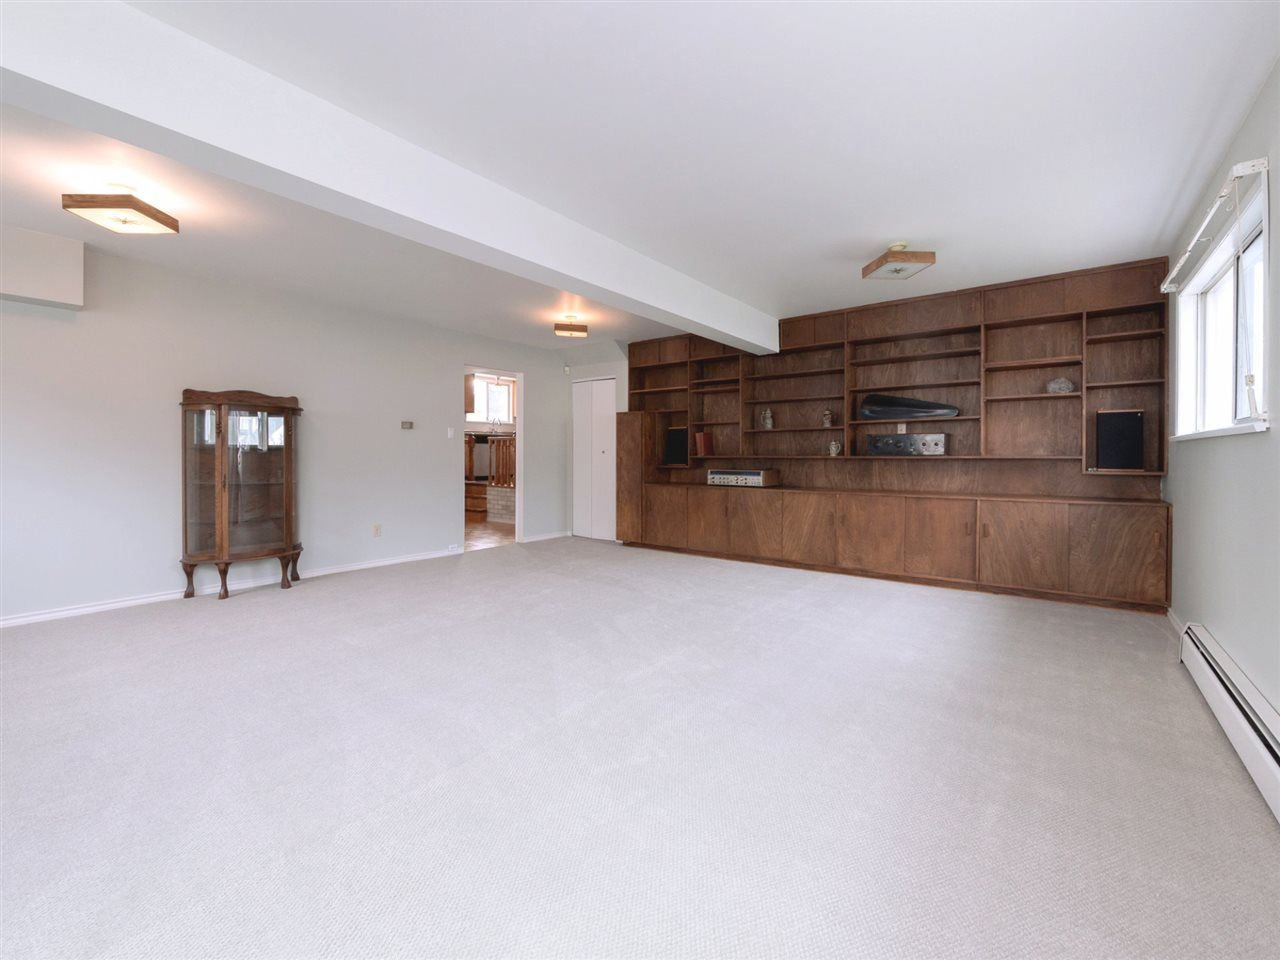 Photo 10: Photos: 14202 110 Avenue in Surrey: Bolivar Heights House for sale (North Surrey)  : MLS®# R2238014